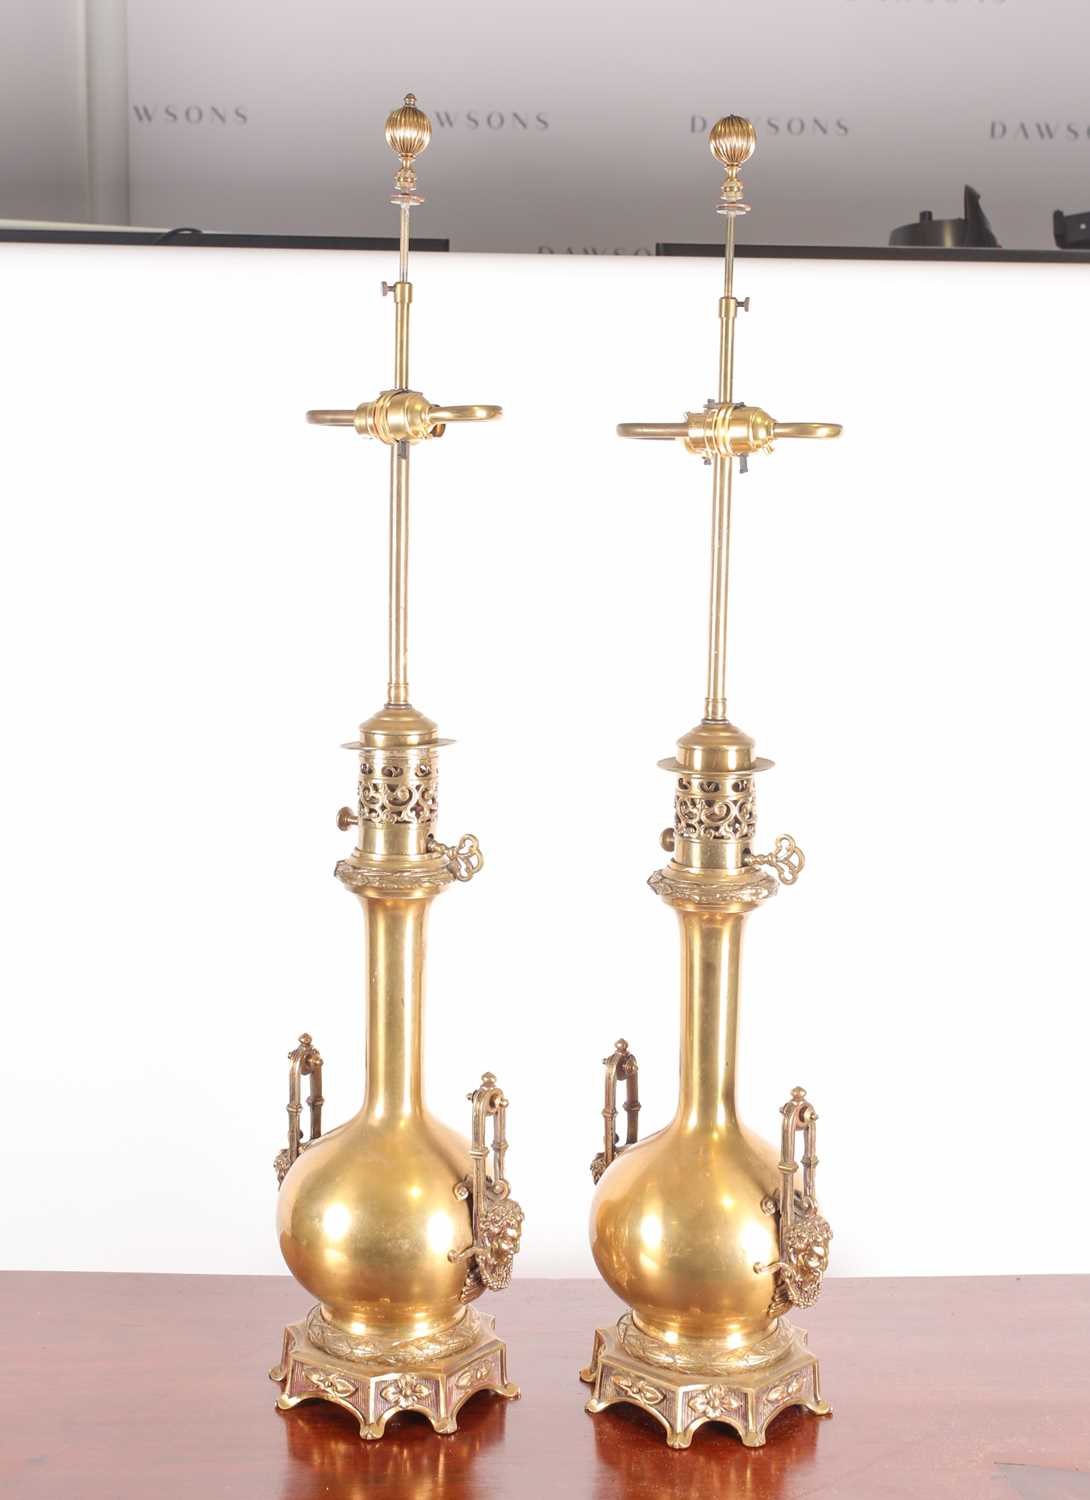 A pair of 19th century French two-handled table lamps (converted for electricity) of bottle form